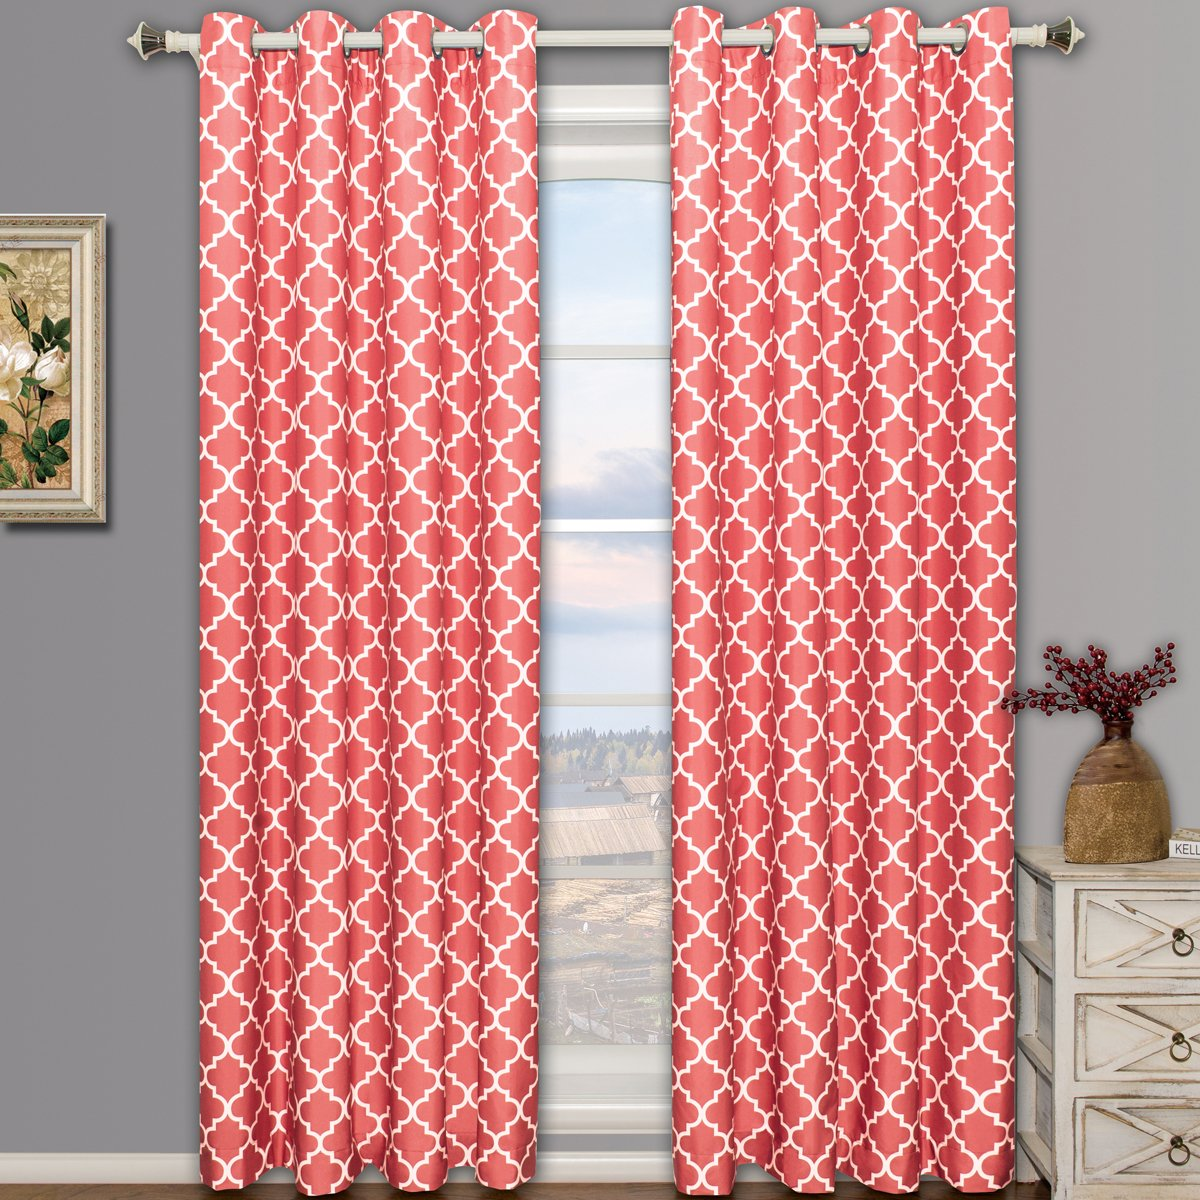 Meridian Brick Red-Orange Top Grommet Room Darkening Window Curtain Panels, Pair / Set of 2 Panels